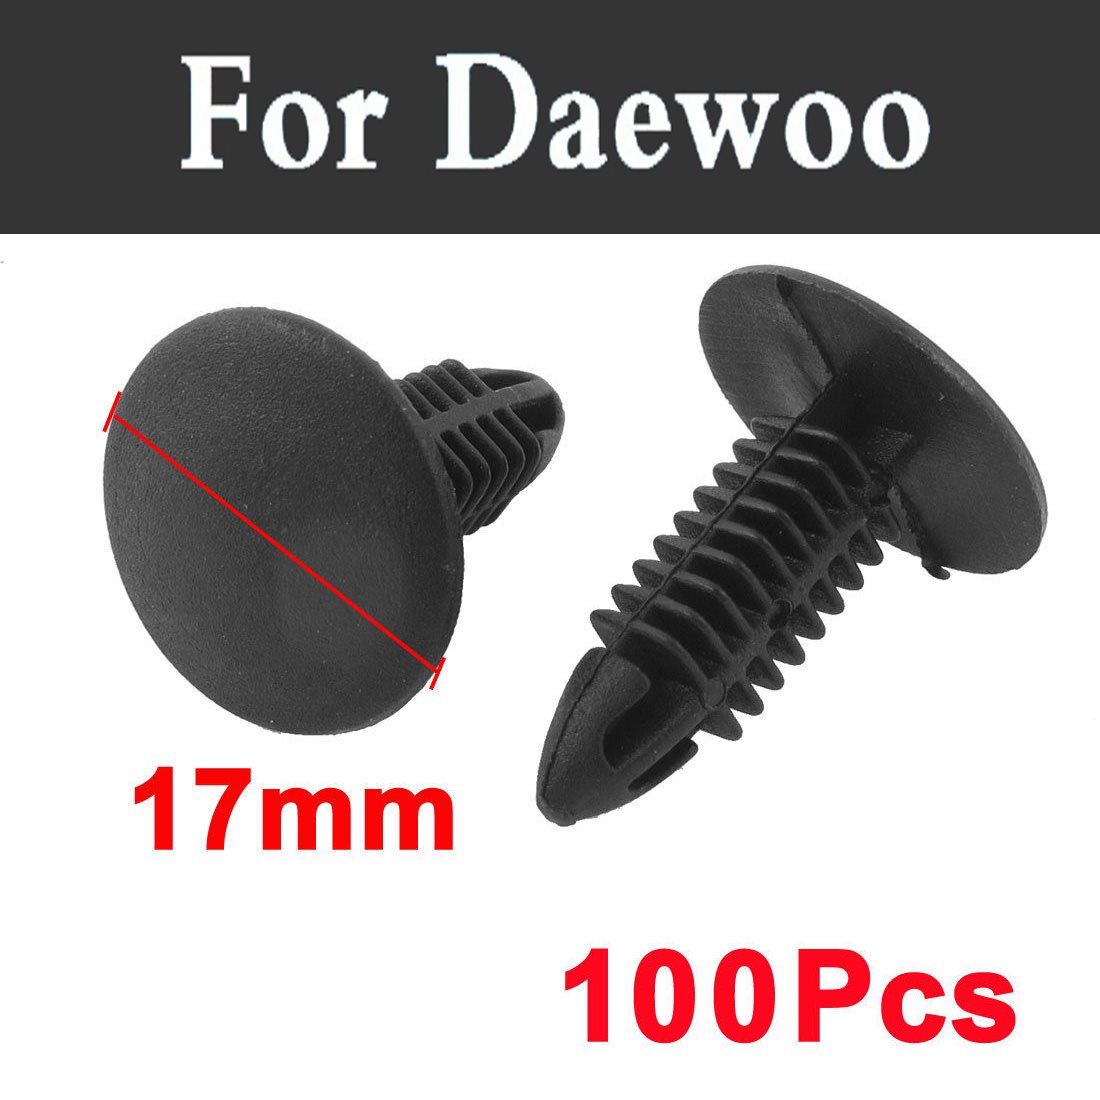 100pcs Car Styling Door Plastic Rivets Fastener Trim Panel Retainer Clips  For Daewoo Matiz Nexia Nubira Sens Tosca Winstorm-in Auto Fastener & Clip  from ...